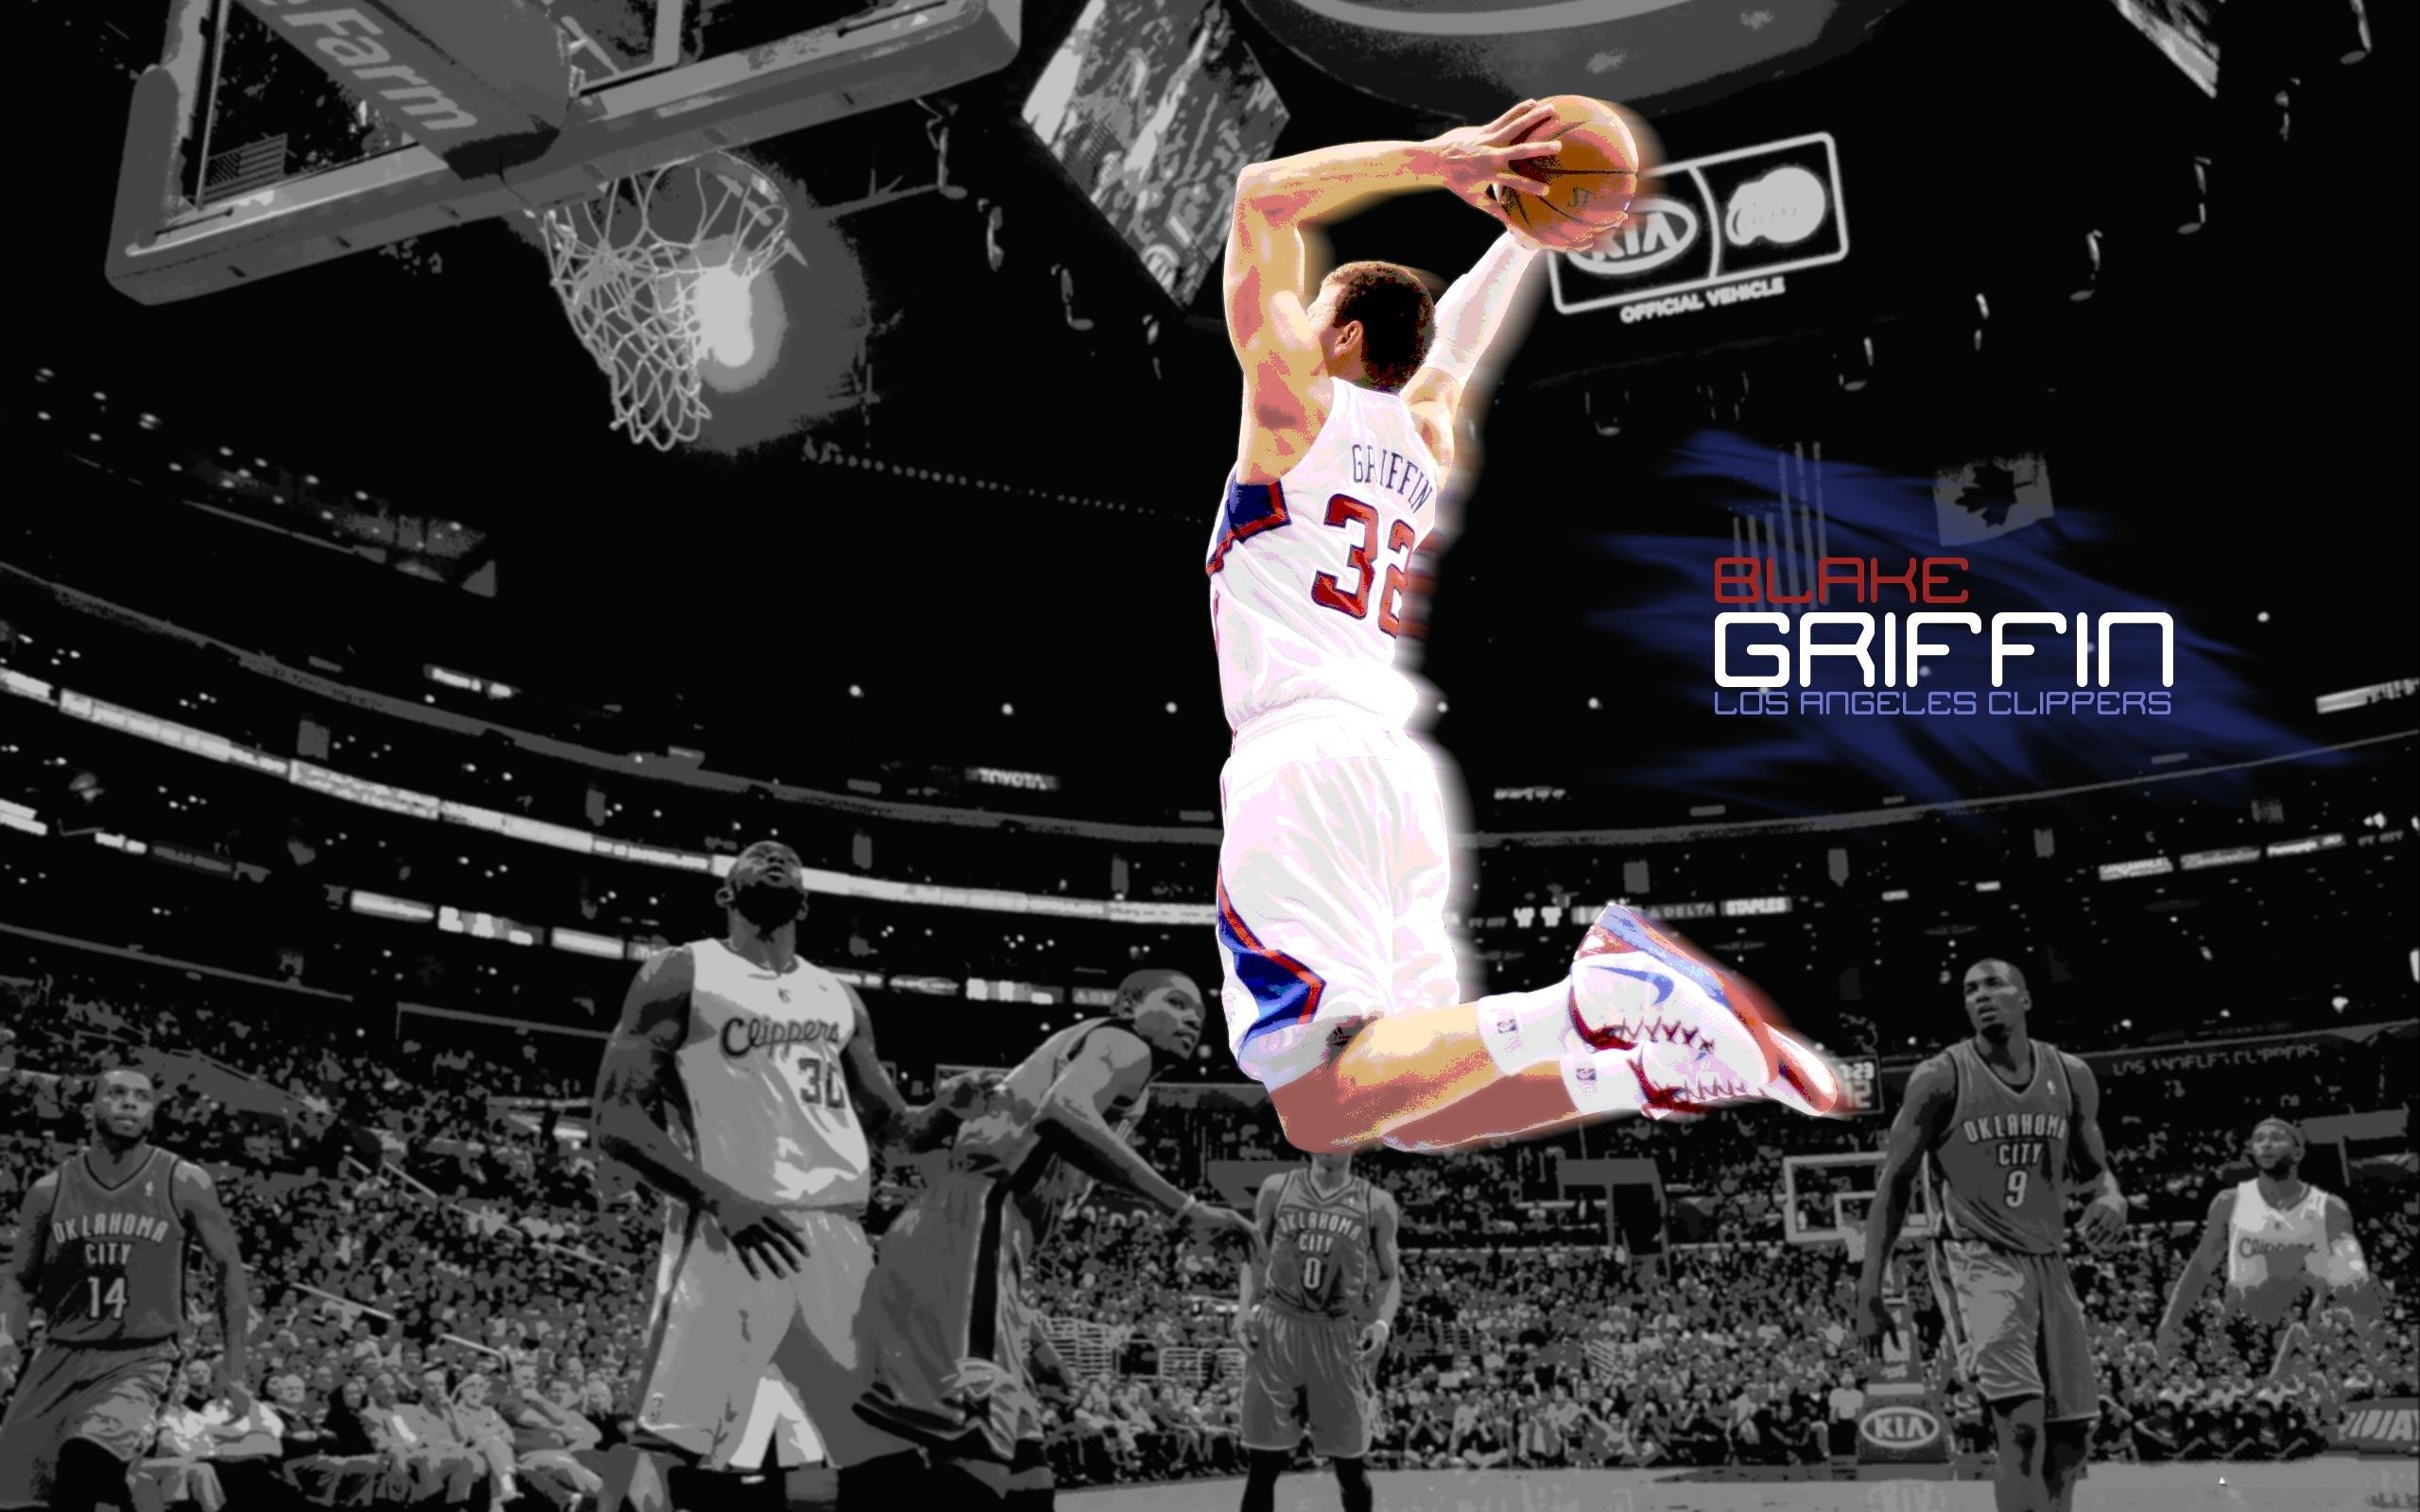 Blake Griffin Losangeles Clippers Hd Wallpapers Blake Griffin Blake Griffin Wallpaper Griffin Wallpaper